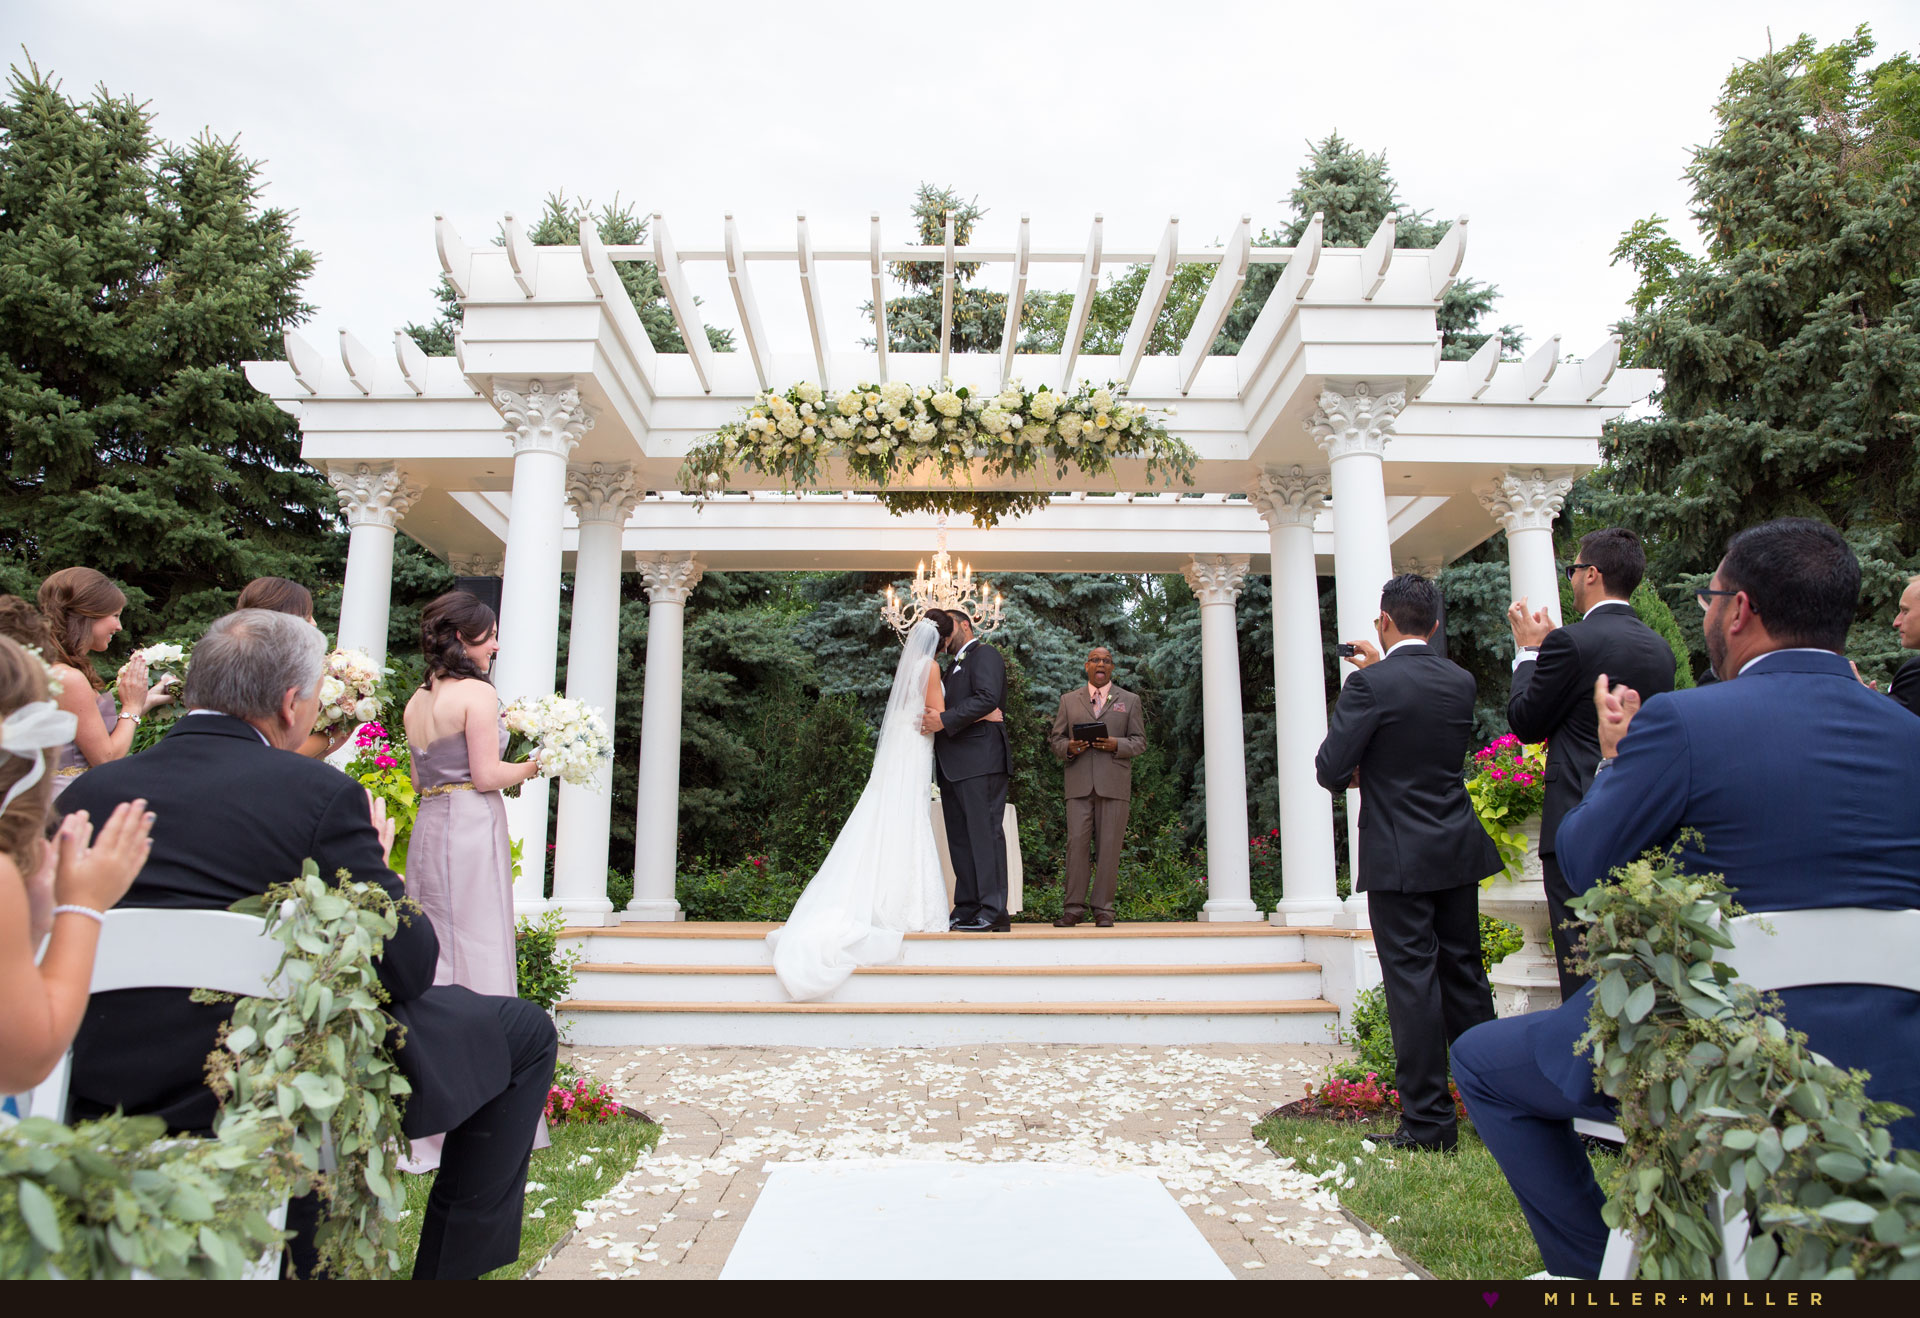 Chicago outdoor wedding ceremony venue